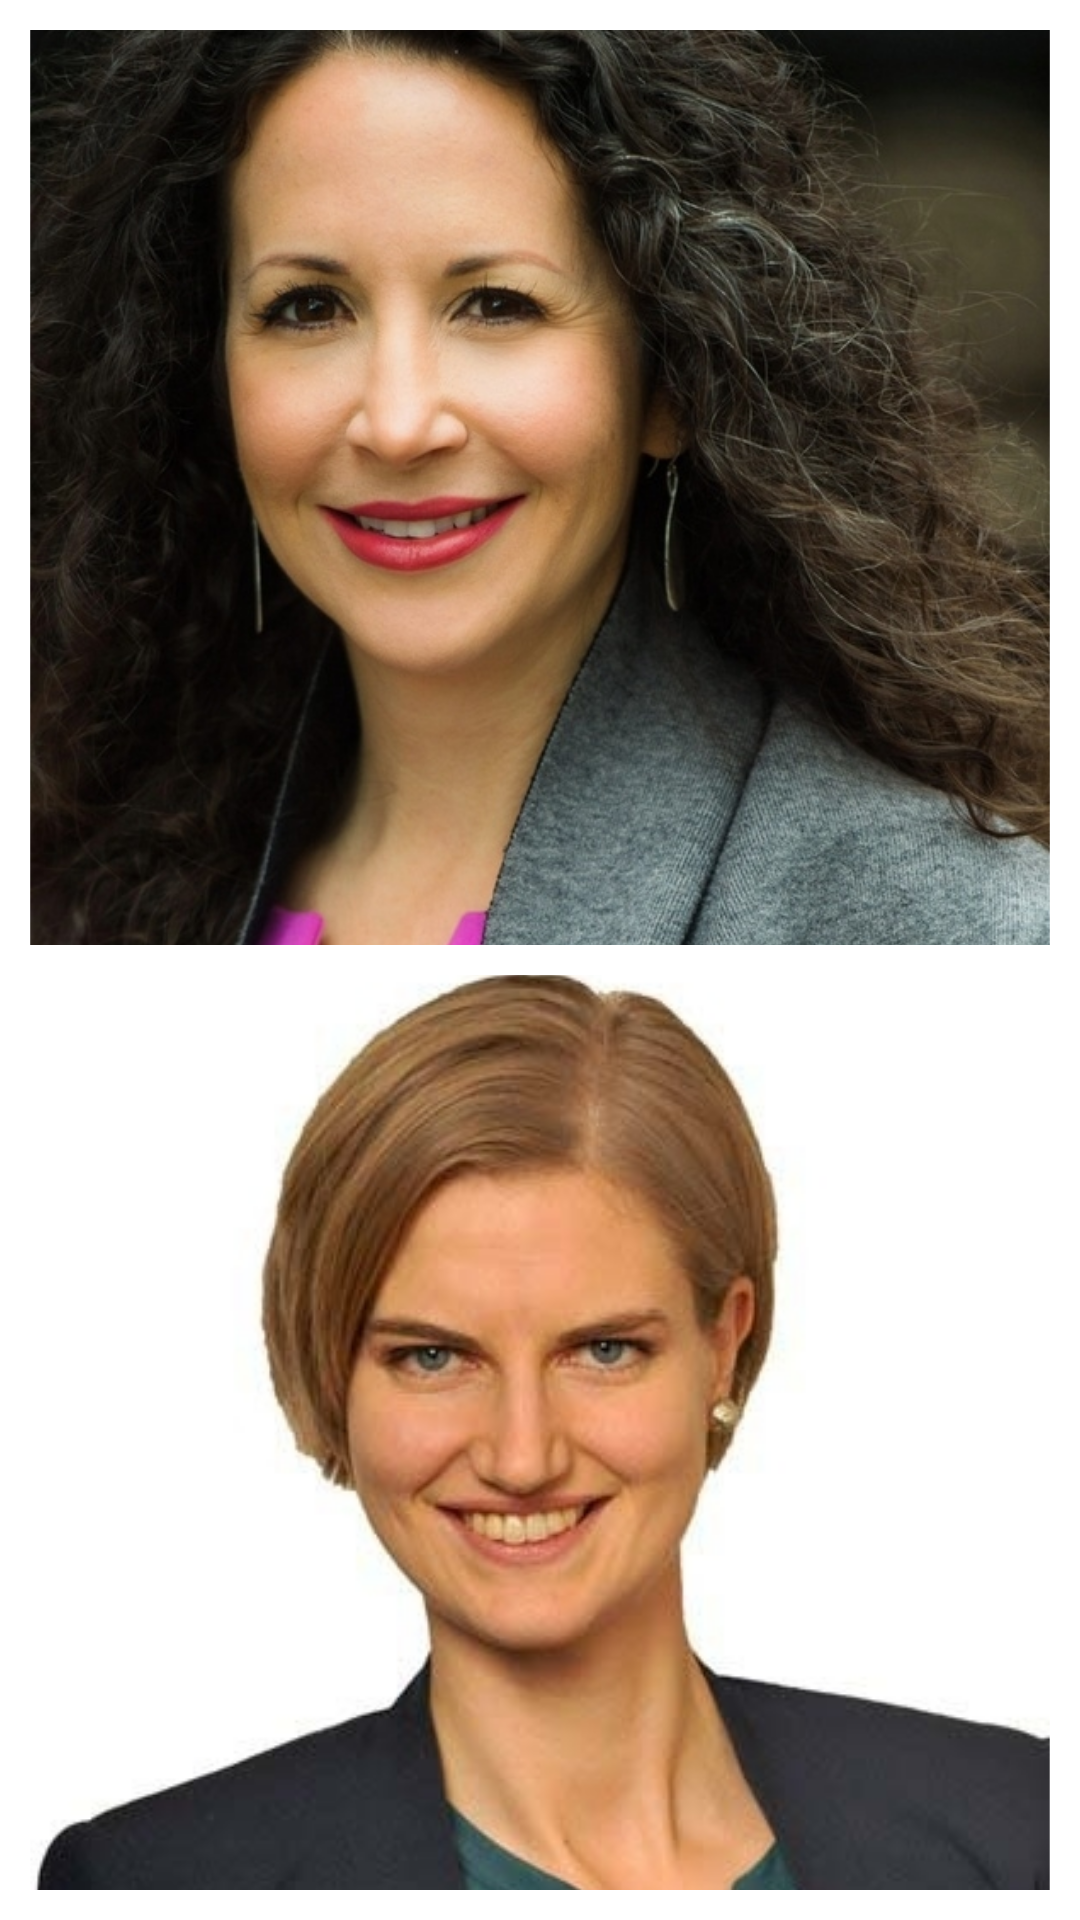 Gina Lupino & Emilie Feil-Fraser - Gina Lupino - U.S. Patent Attorney of Lupino Law, and Emilie Feil-Fraser – from Gowling WLG, will discuss the mechanics of protecting brand names in the US, Canada, and around with world with trademark prosecution under the Madrid Protocol.